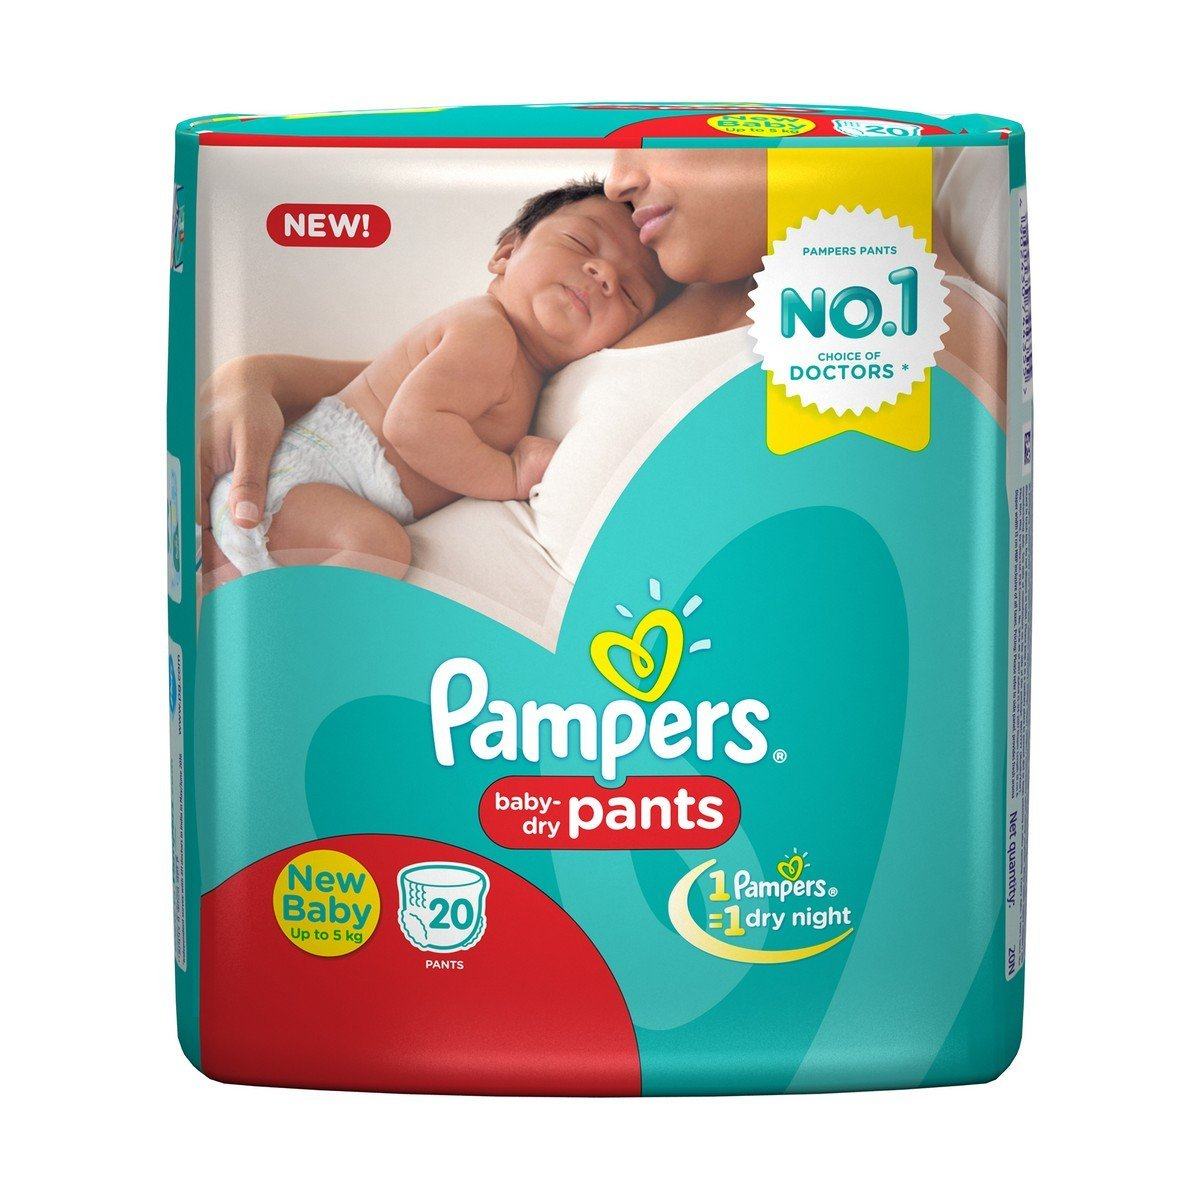 Pampers New born Baby Diaper 20 Count